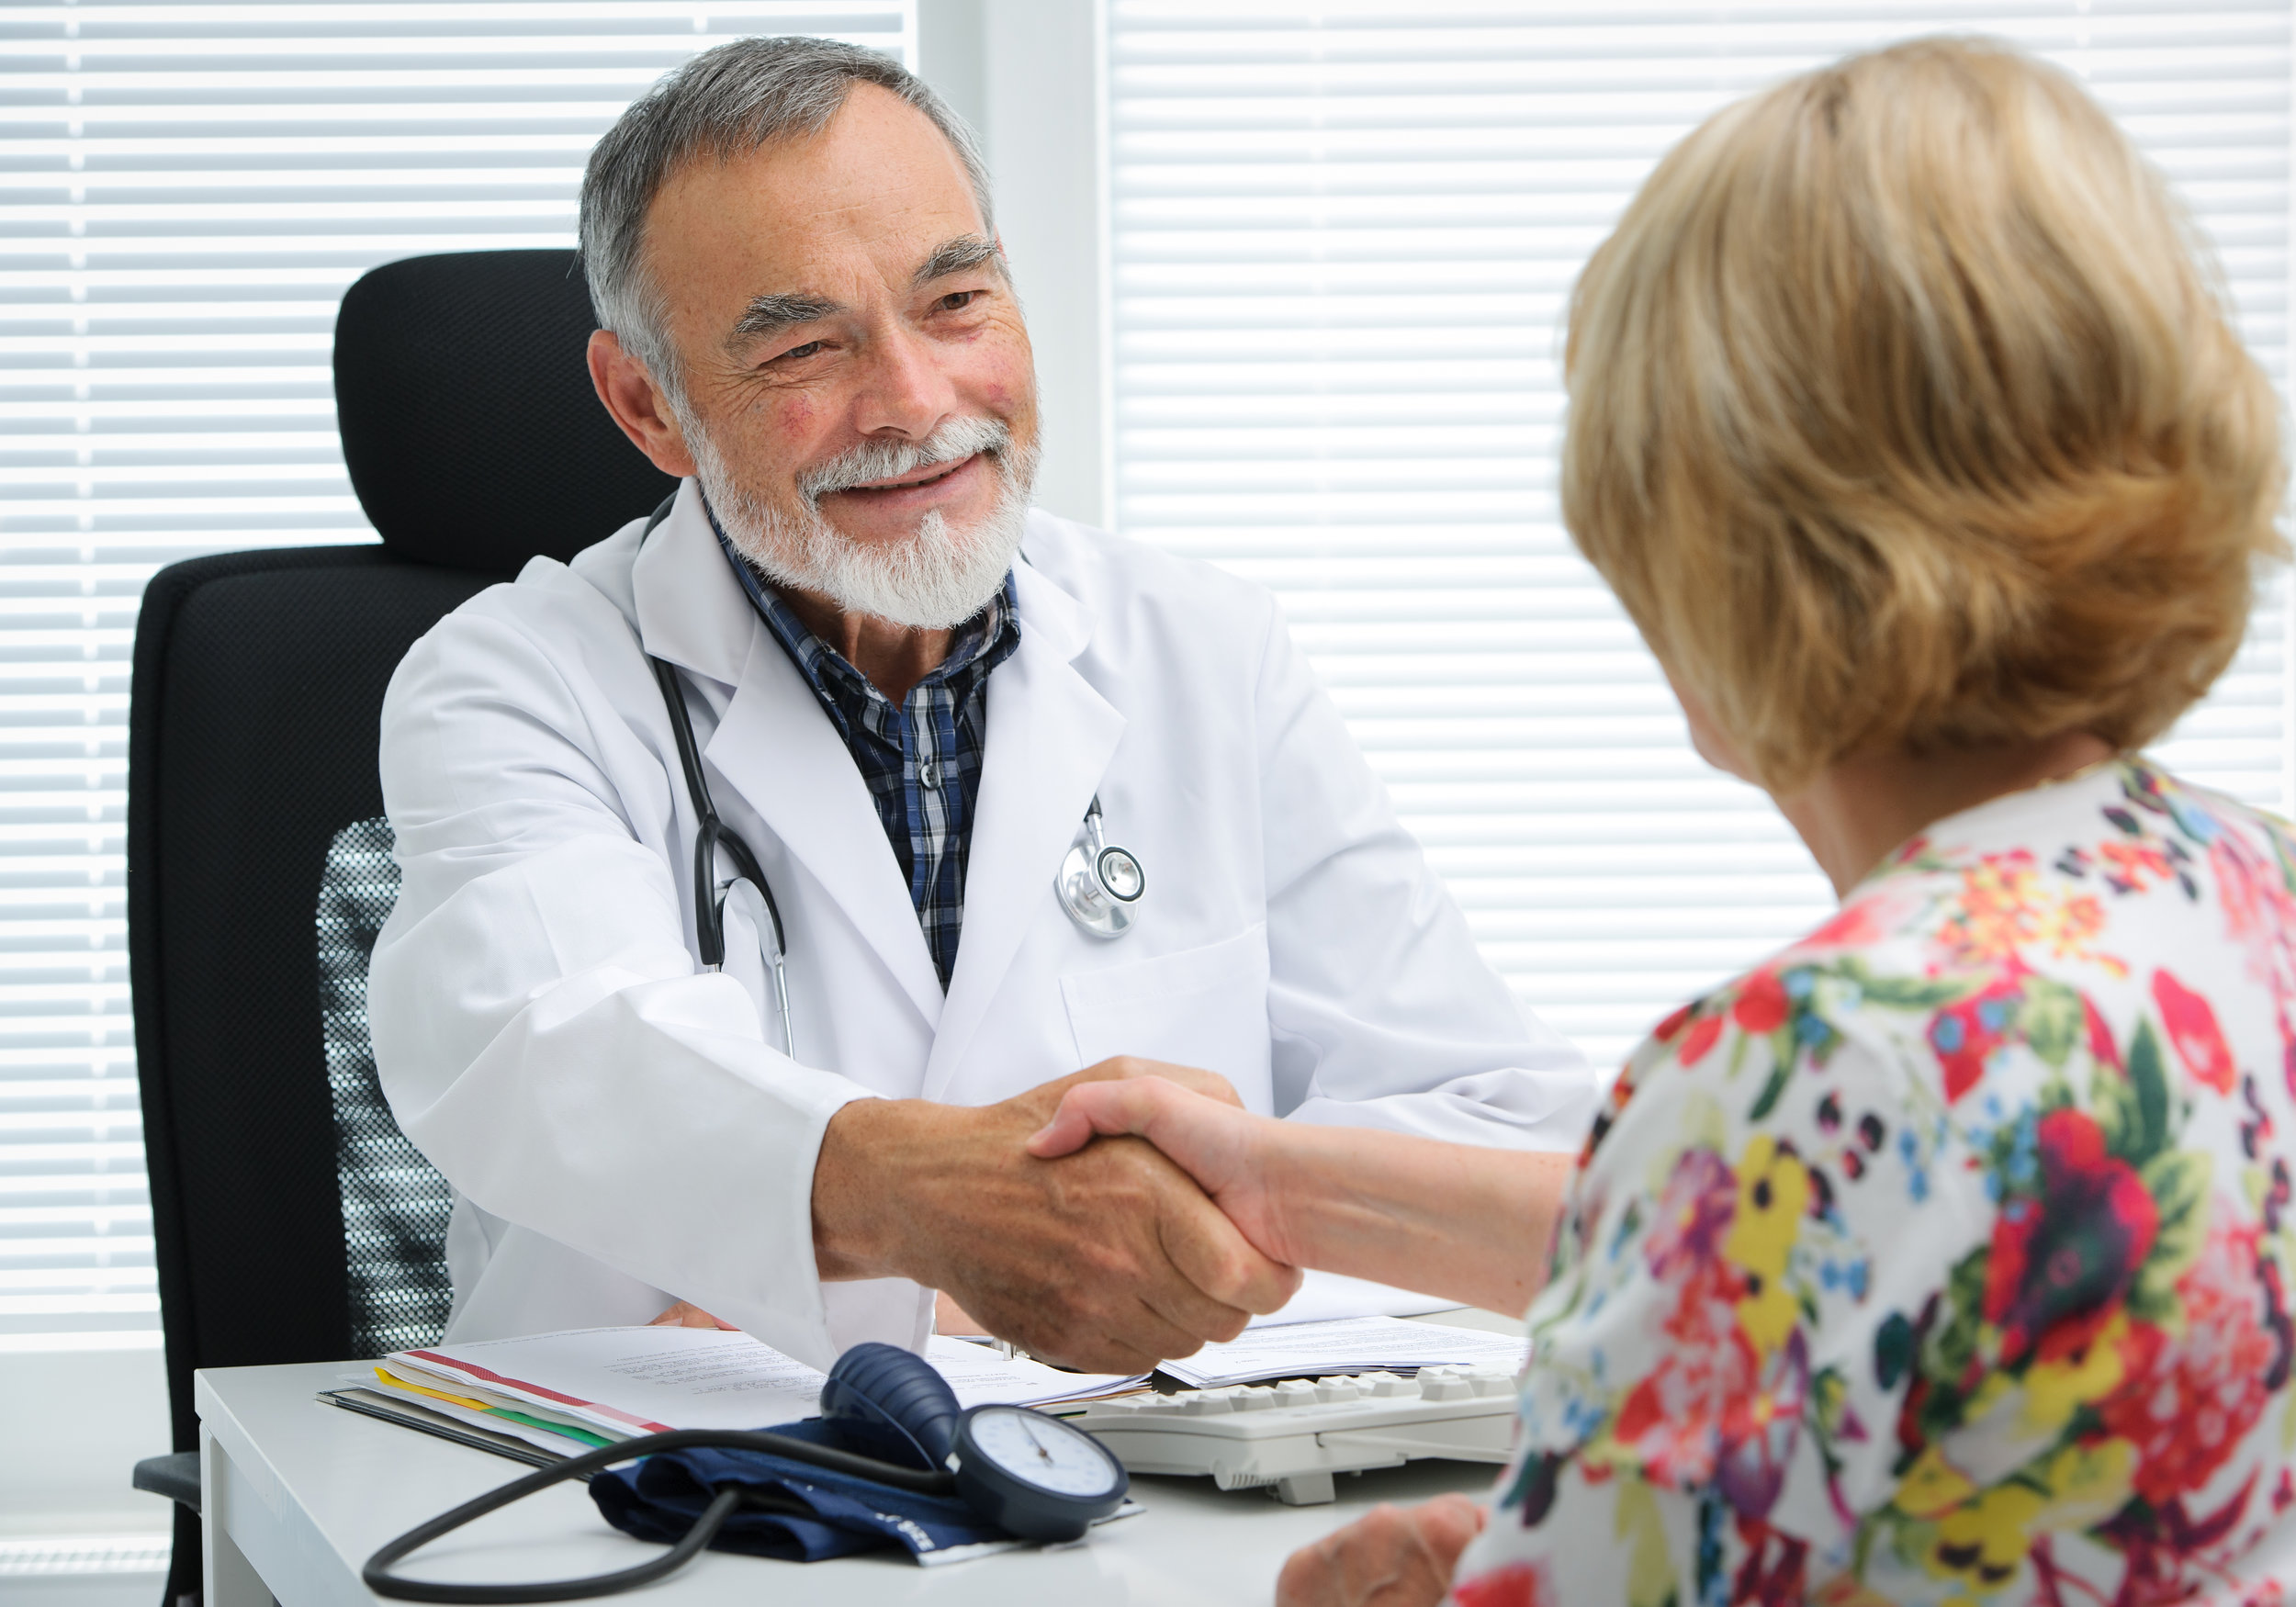 Friendly male family doctor greeting female patient at an annual appointment with a handshake